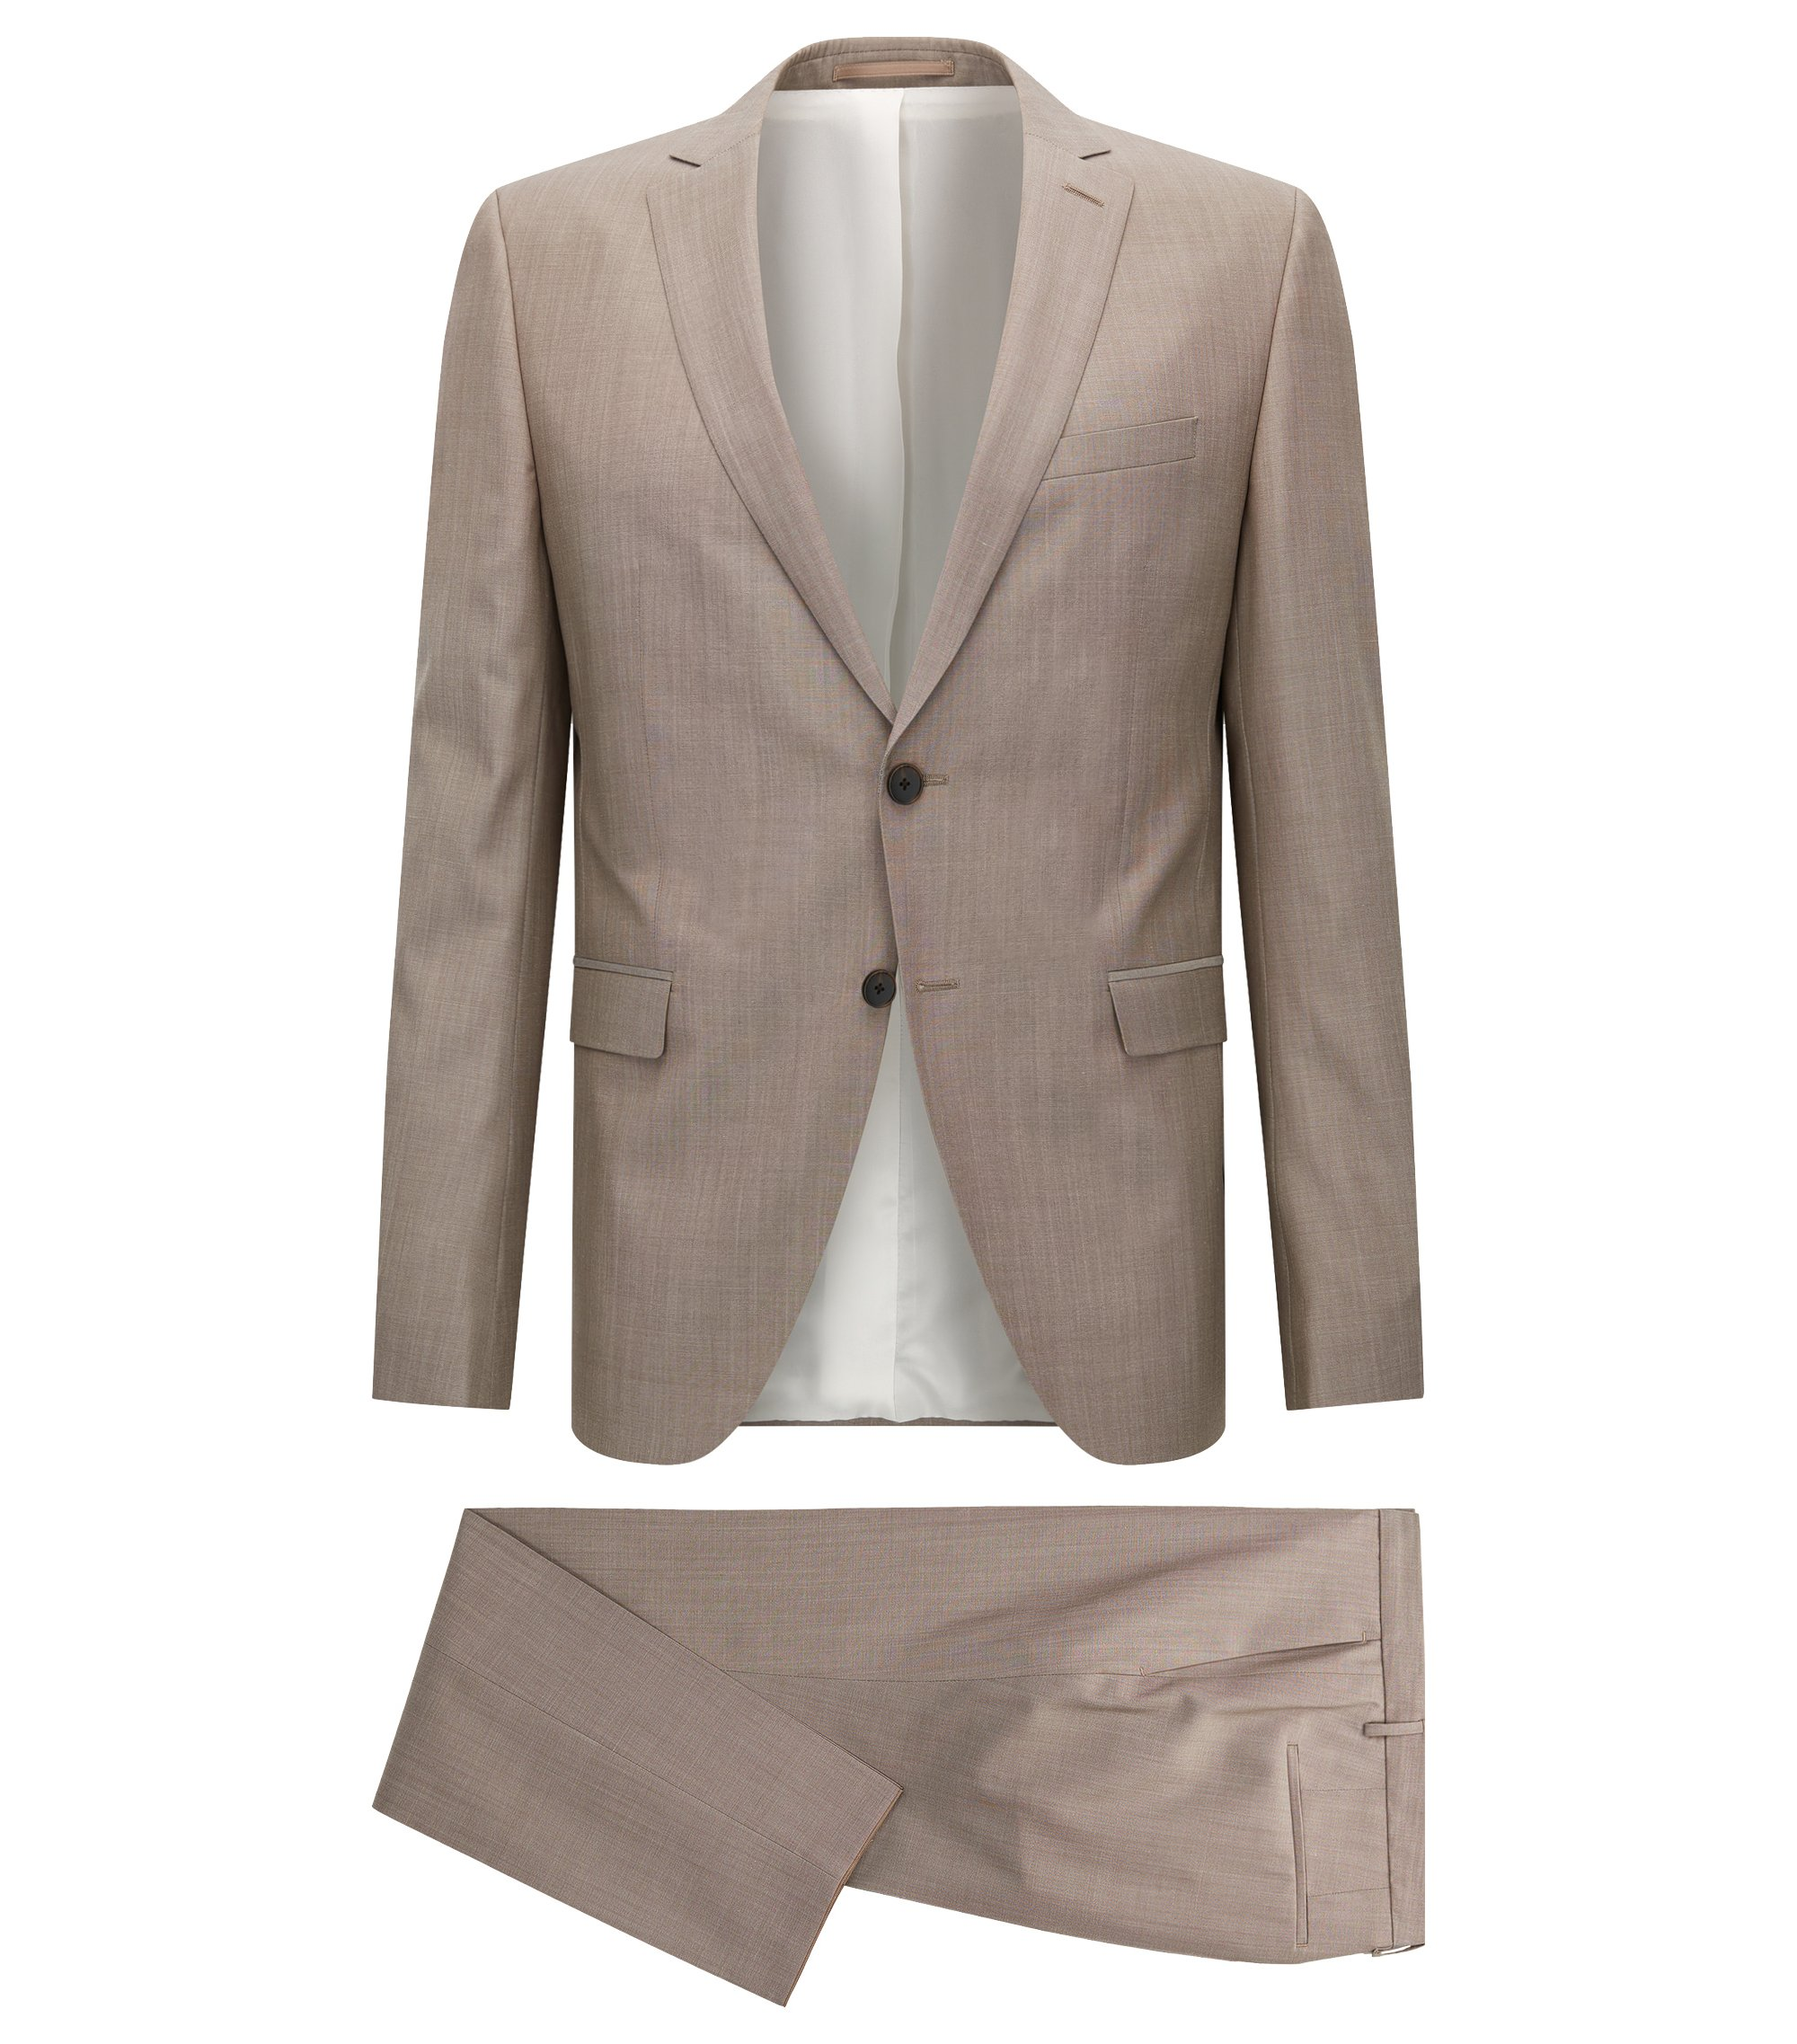 Heathered Virgin Wool Suit, Extra Slim Fit | Reymond/Wenton, Beige